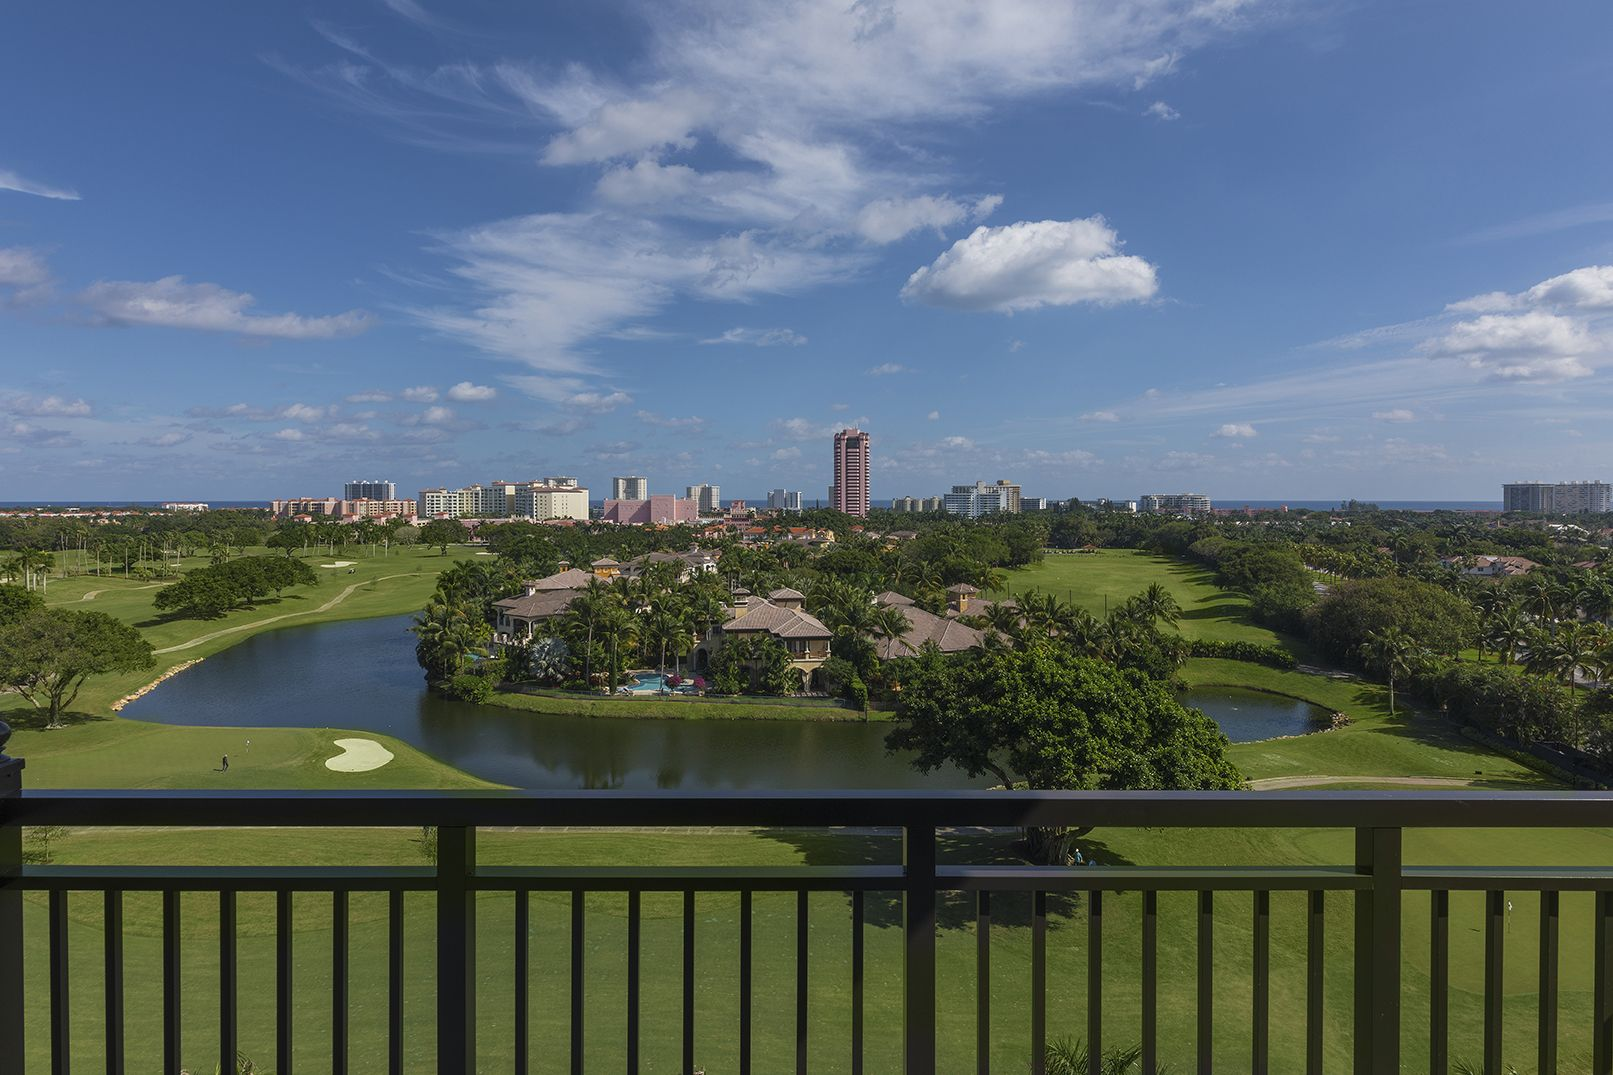 view of a Boca Raton golf course and skyline